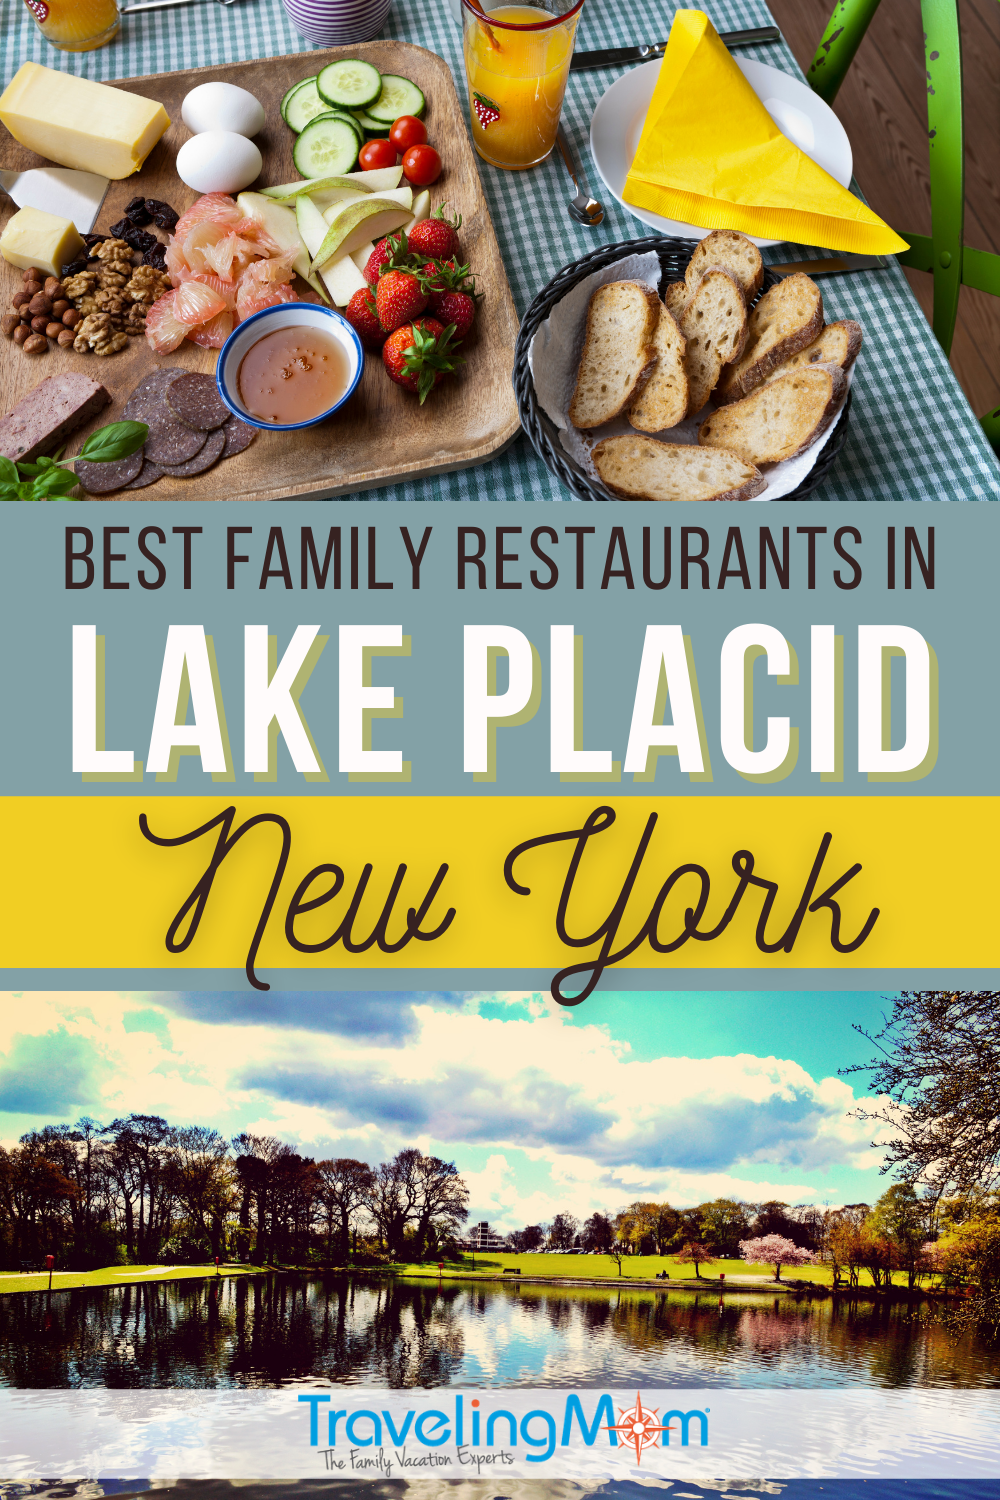 pin with text best family restaurants in lake placid new york with top image of bread and fruit and bottom scenery image